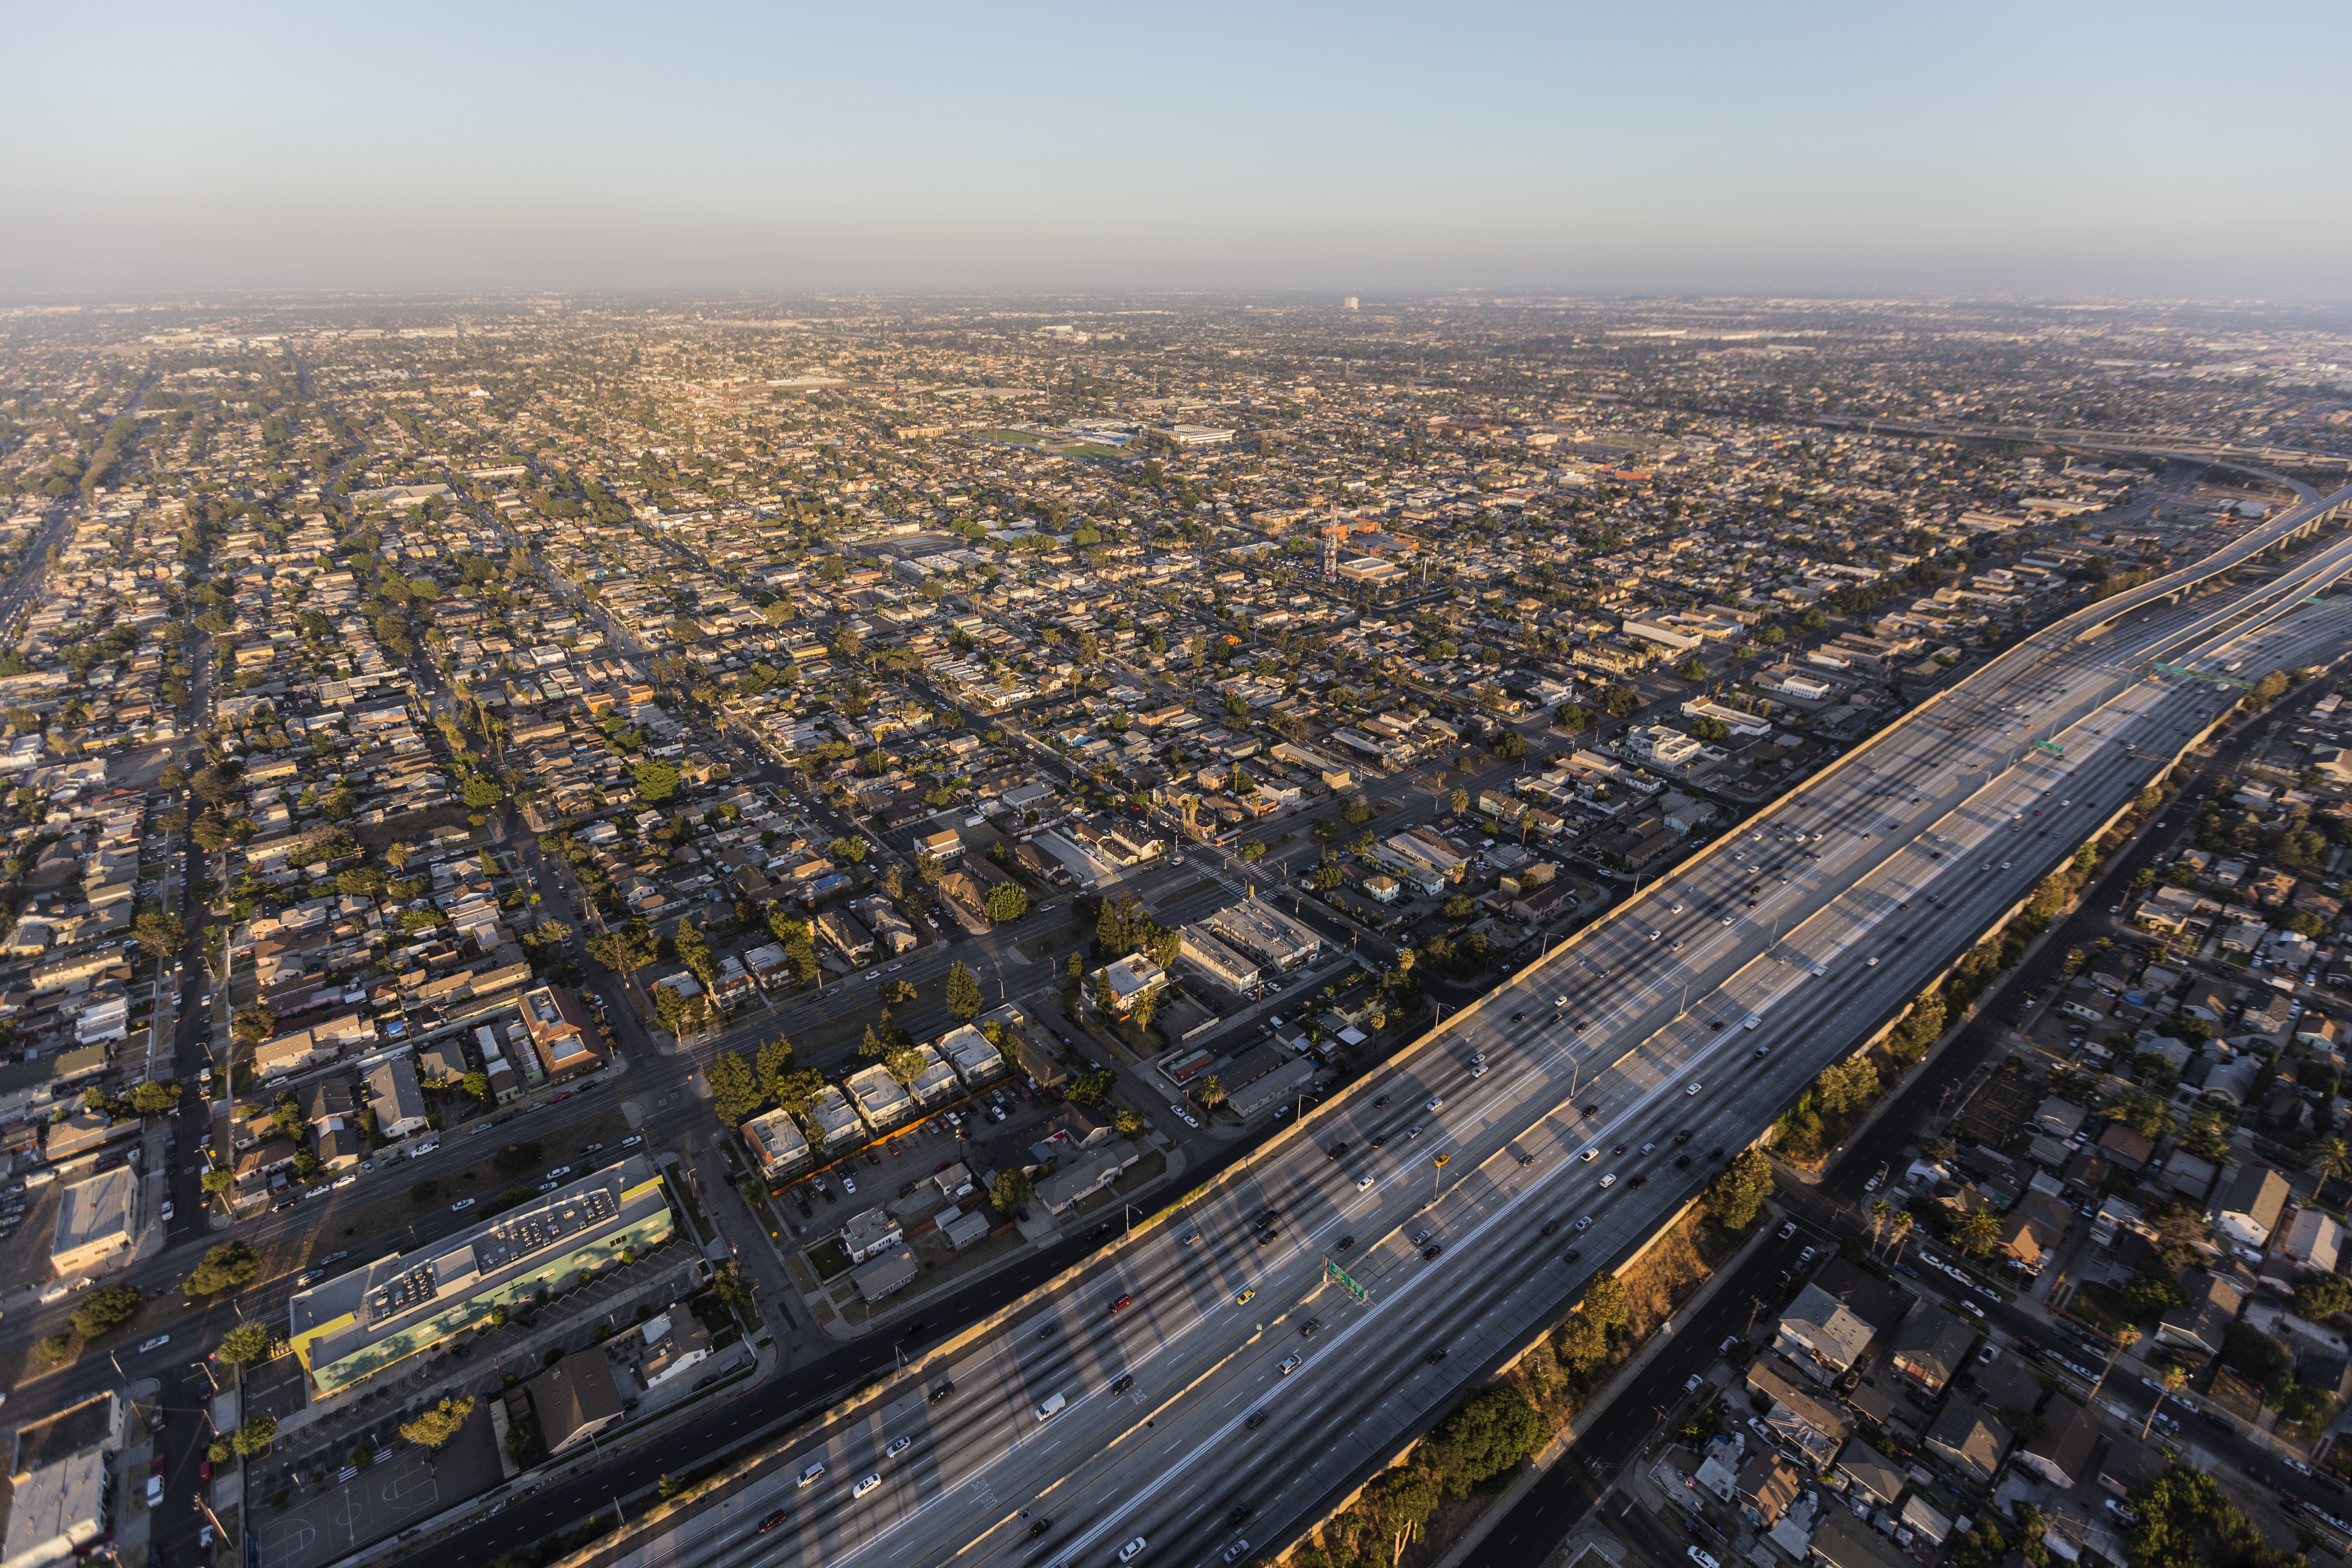 Aerial view of South LA